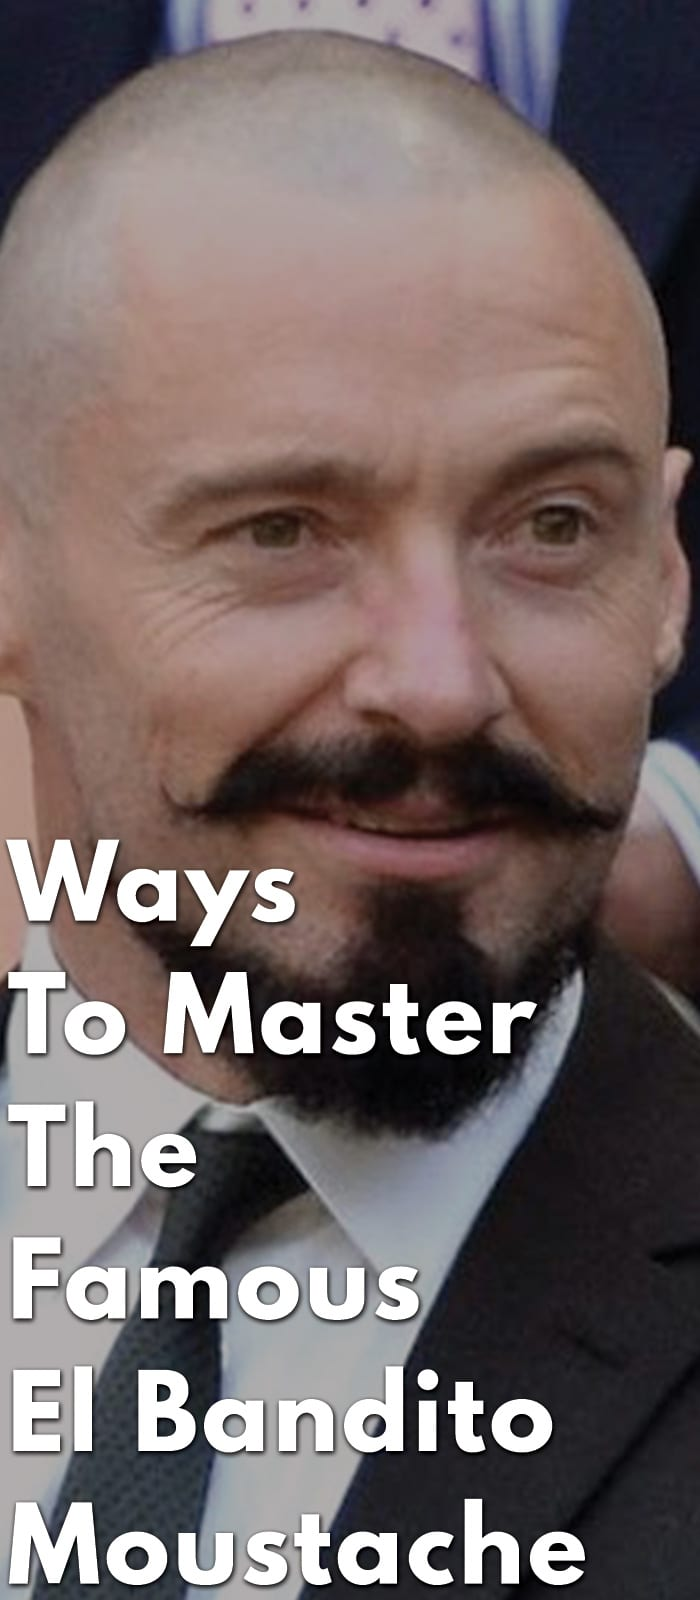 Ways-To-Master-The-Famous-El-Bandito-Moustache.